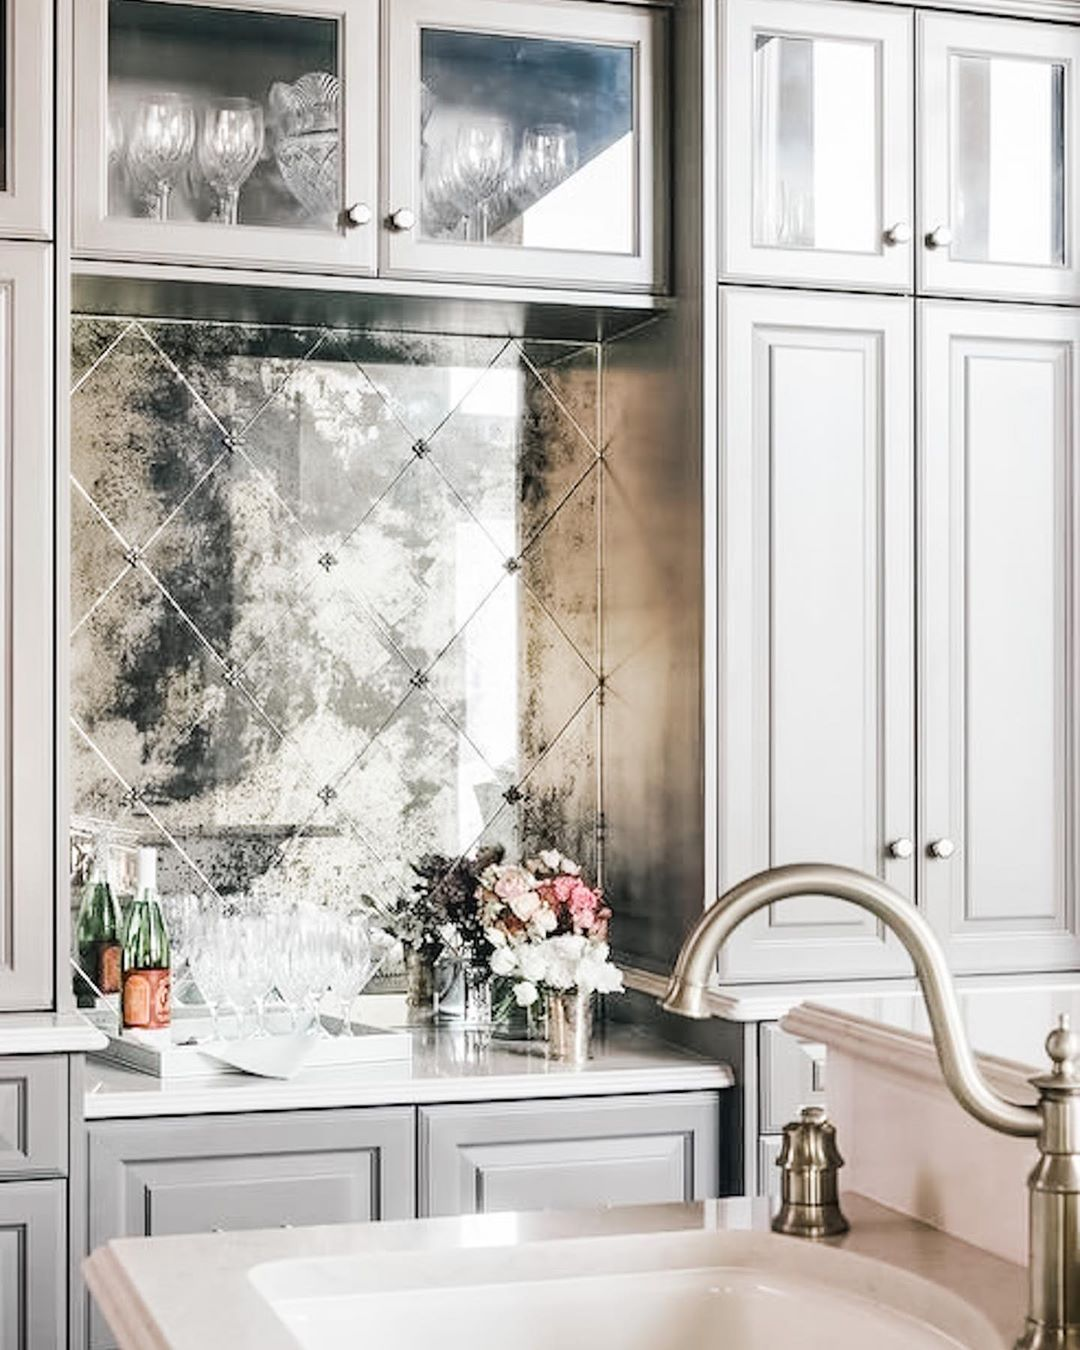 Pin By Katariina Brandt On Wet Bar Coffee Station In 2020 With